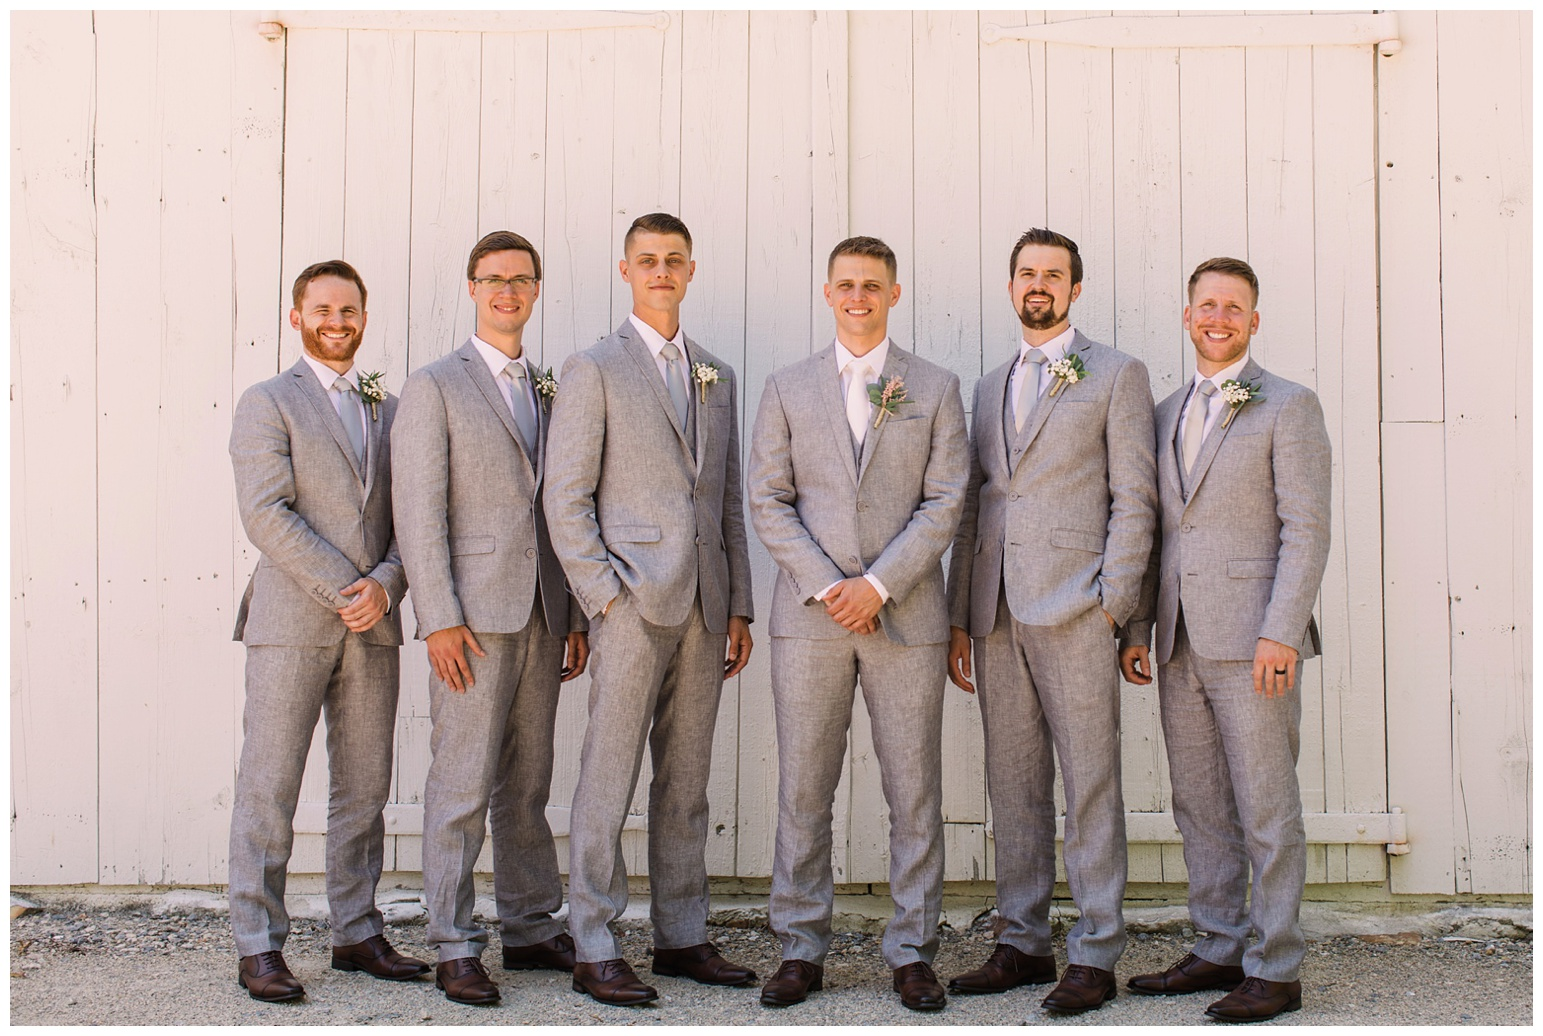 worsell manor wedding in the summer - warwick md - now featured on My Eastern Shore Wedding - coastal - sea - nautical - eastern shore - inspired wedding ideas and inspo - photo of groom and groomsmen - wedding party - in front of barn like wall door - white - formal portrait photo outdoors on maryland eastern shore